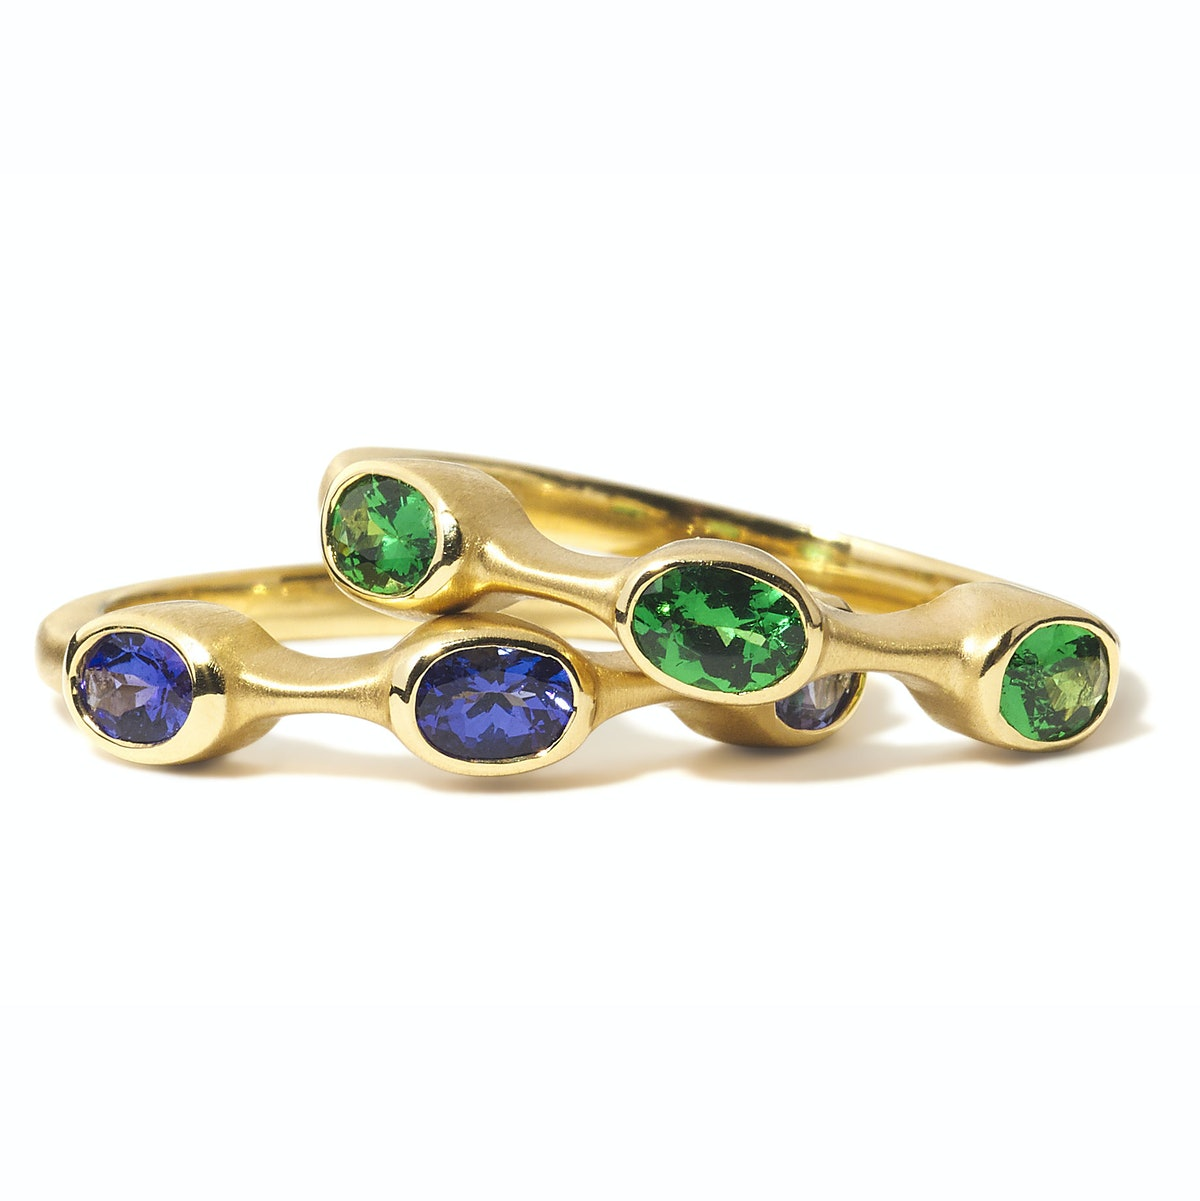 Carelle gold and blue tanzanite ring